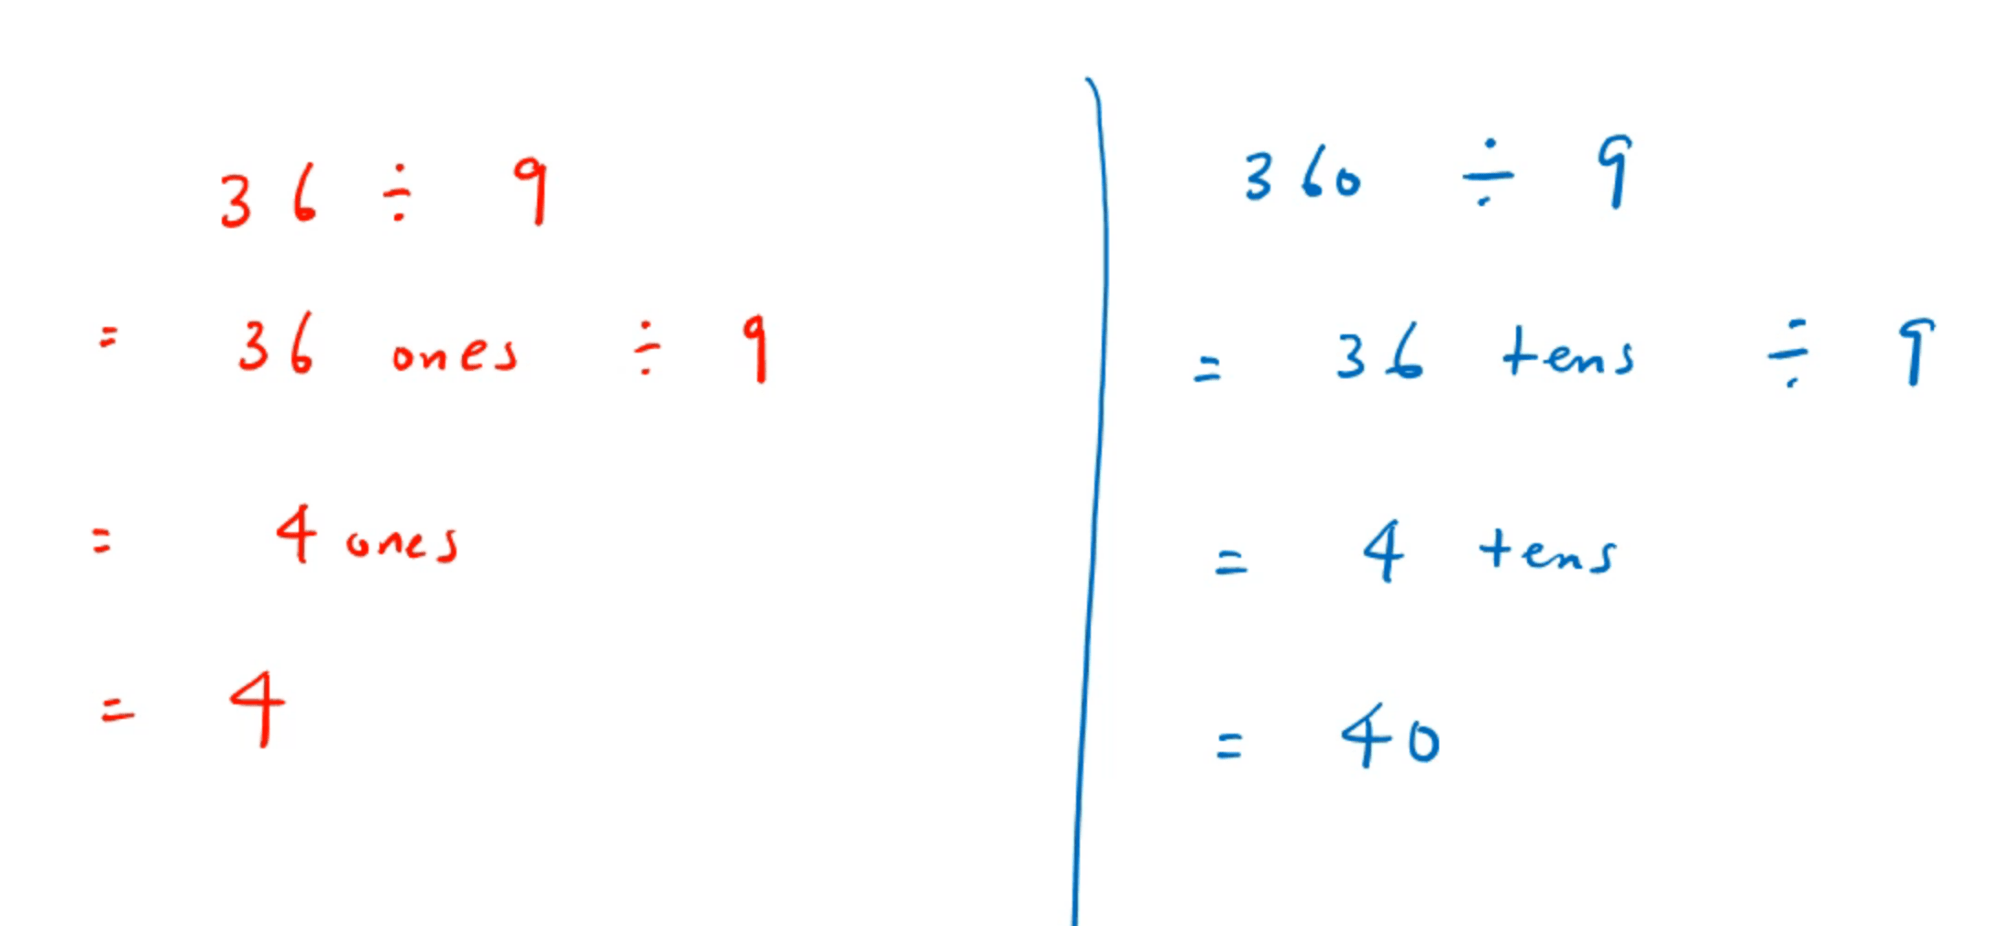 hight resolution of Division - Remainder and Regrouping - TeachableMath